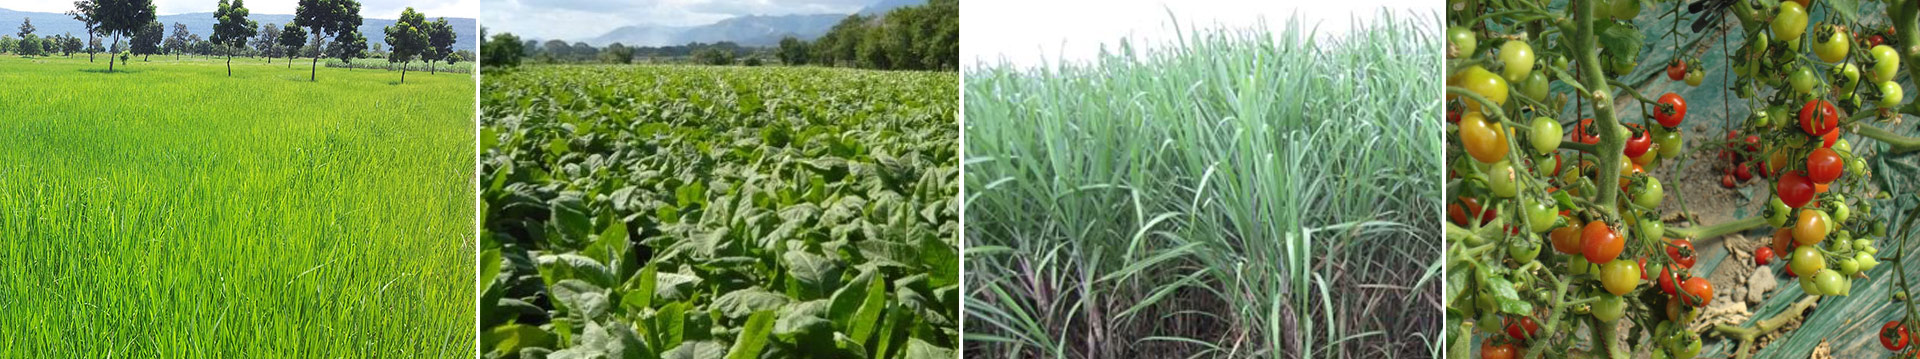 Treat your crops header, rice, alfalfa, sugar cane, and tomato fields